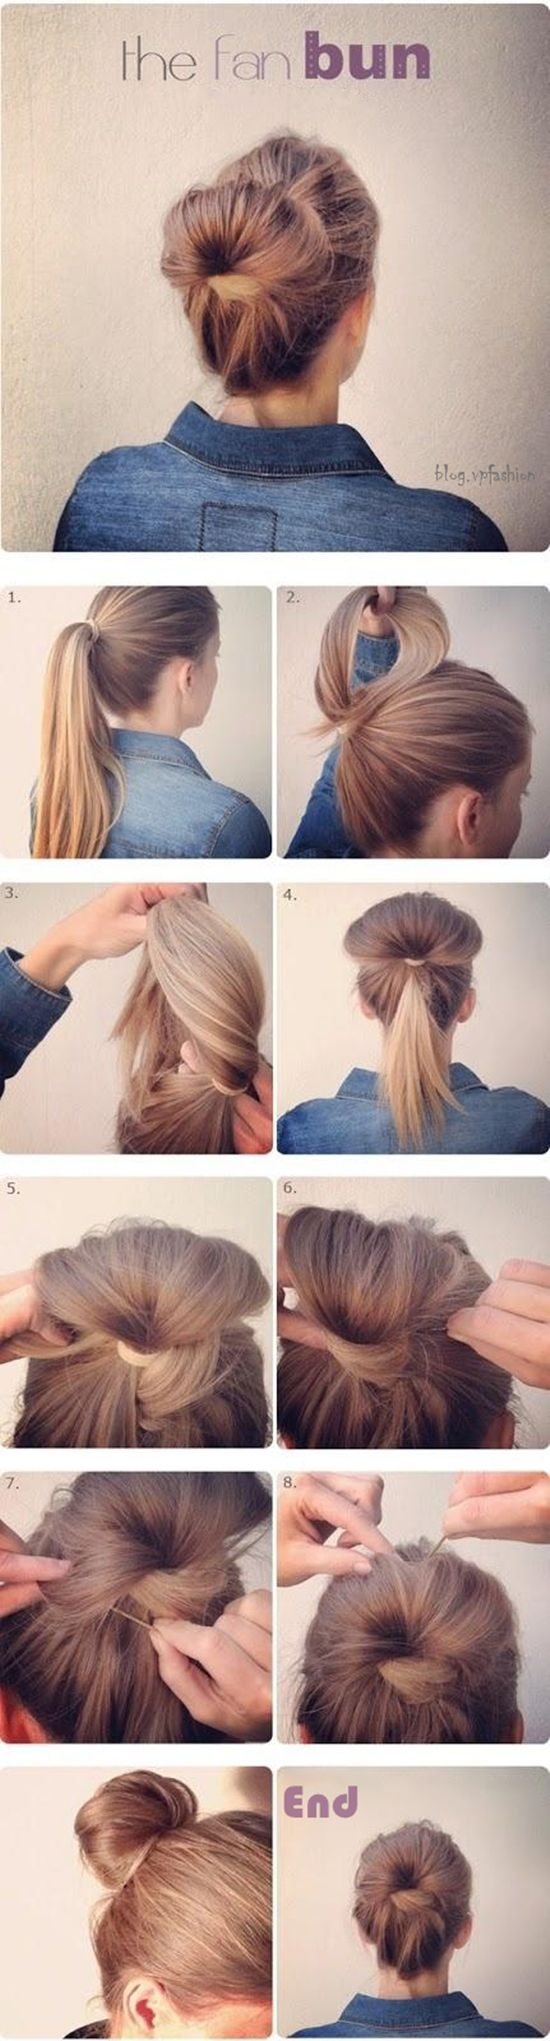 I've seen people do these buns and I've asked them how they did it. All they say is that they just put it up! There's so many different ways to put something up but I need a tutorial!